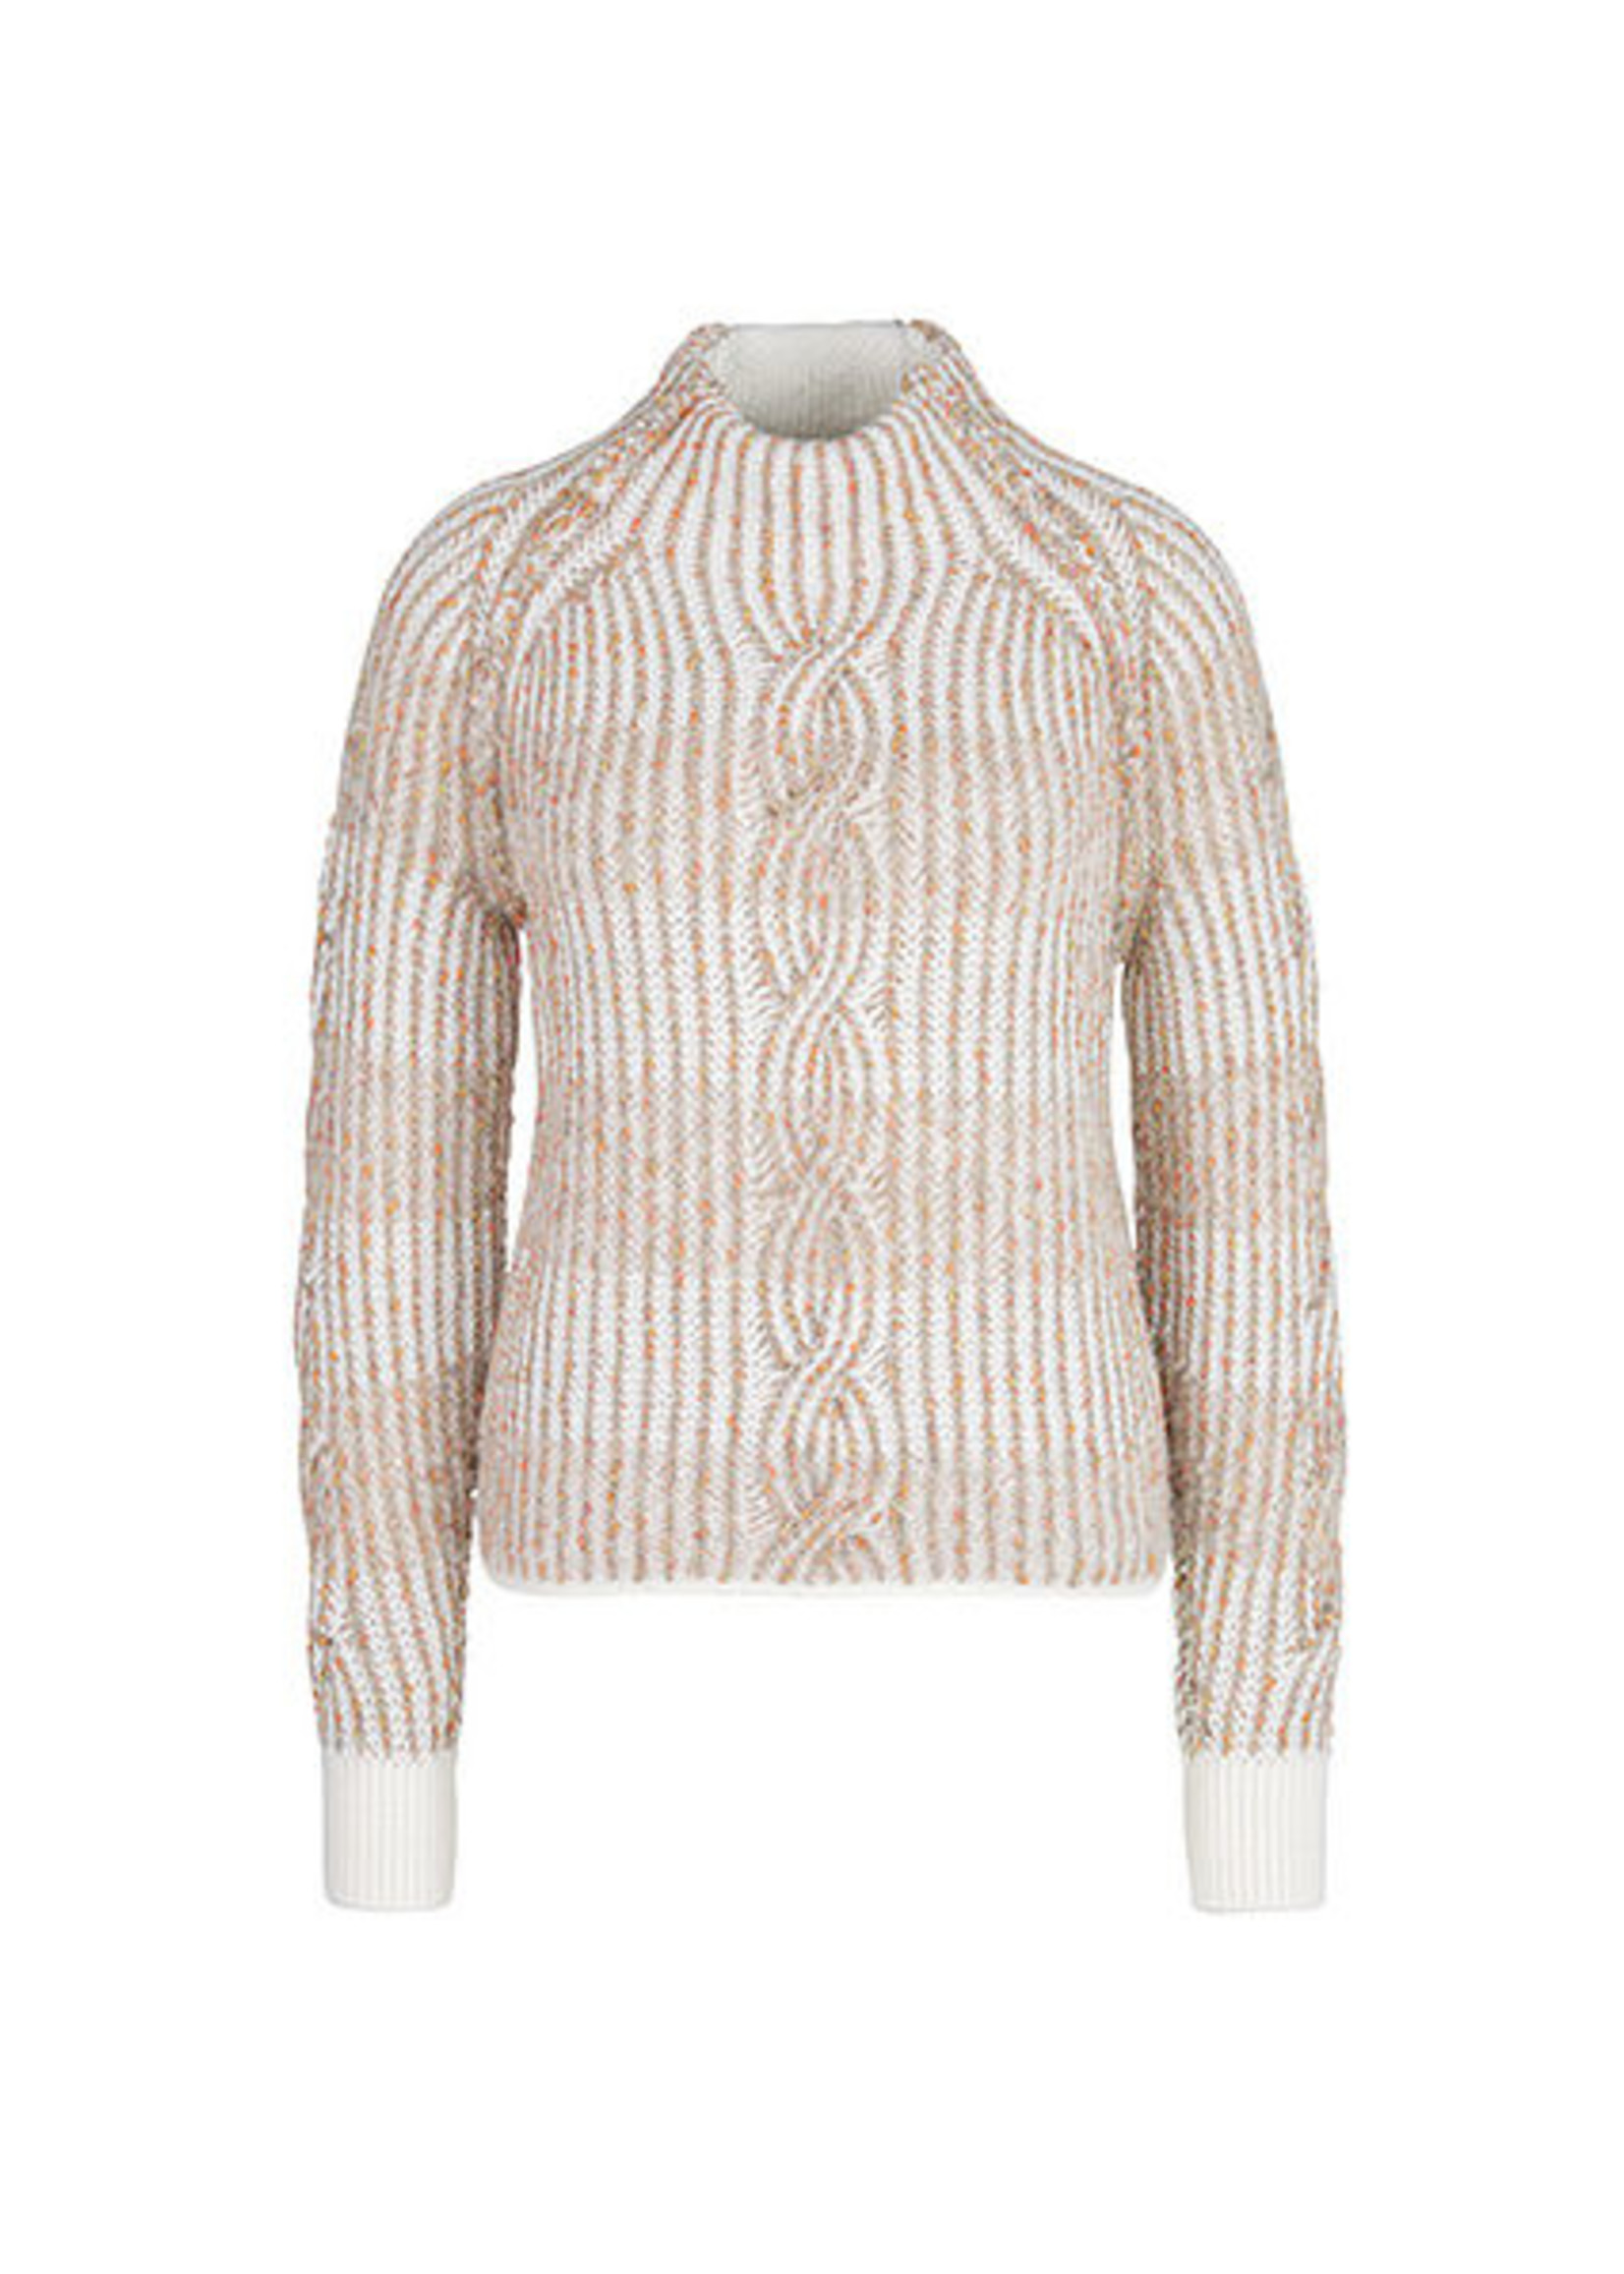 Marccain Sports Sweater RS 41.44 M31 tiger